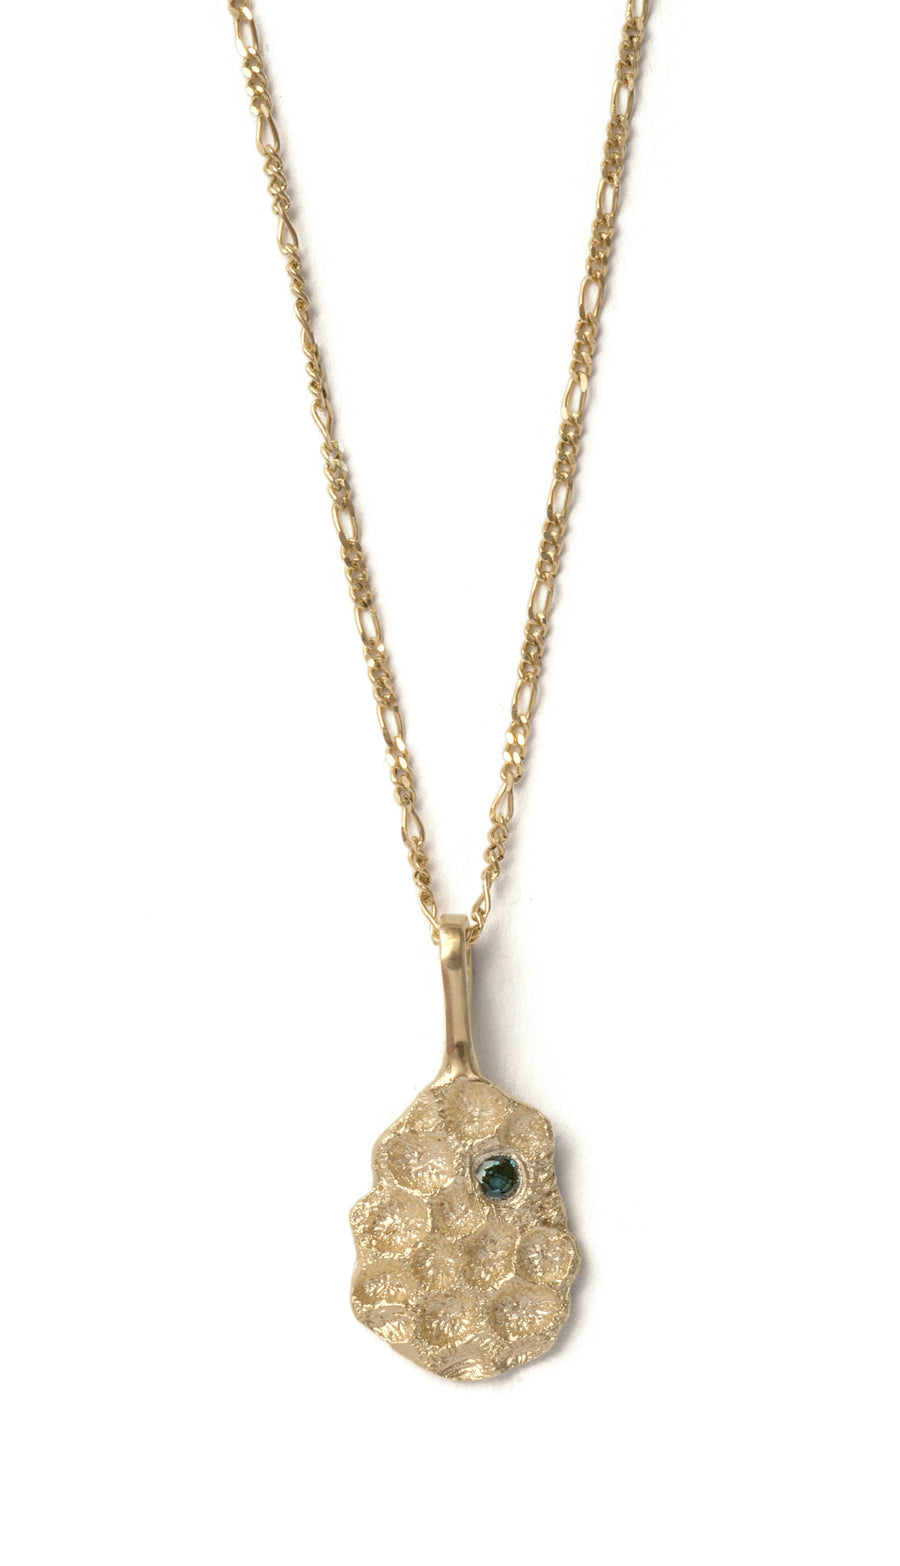 The Monterosso Necklace - 9ct Gold